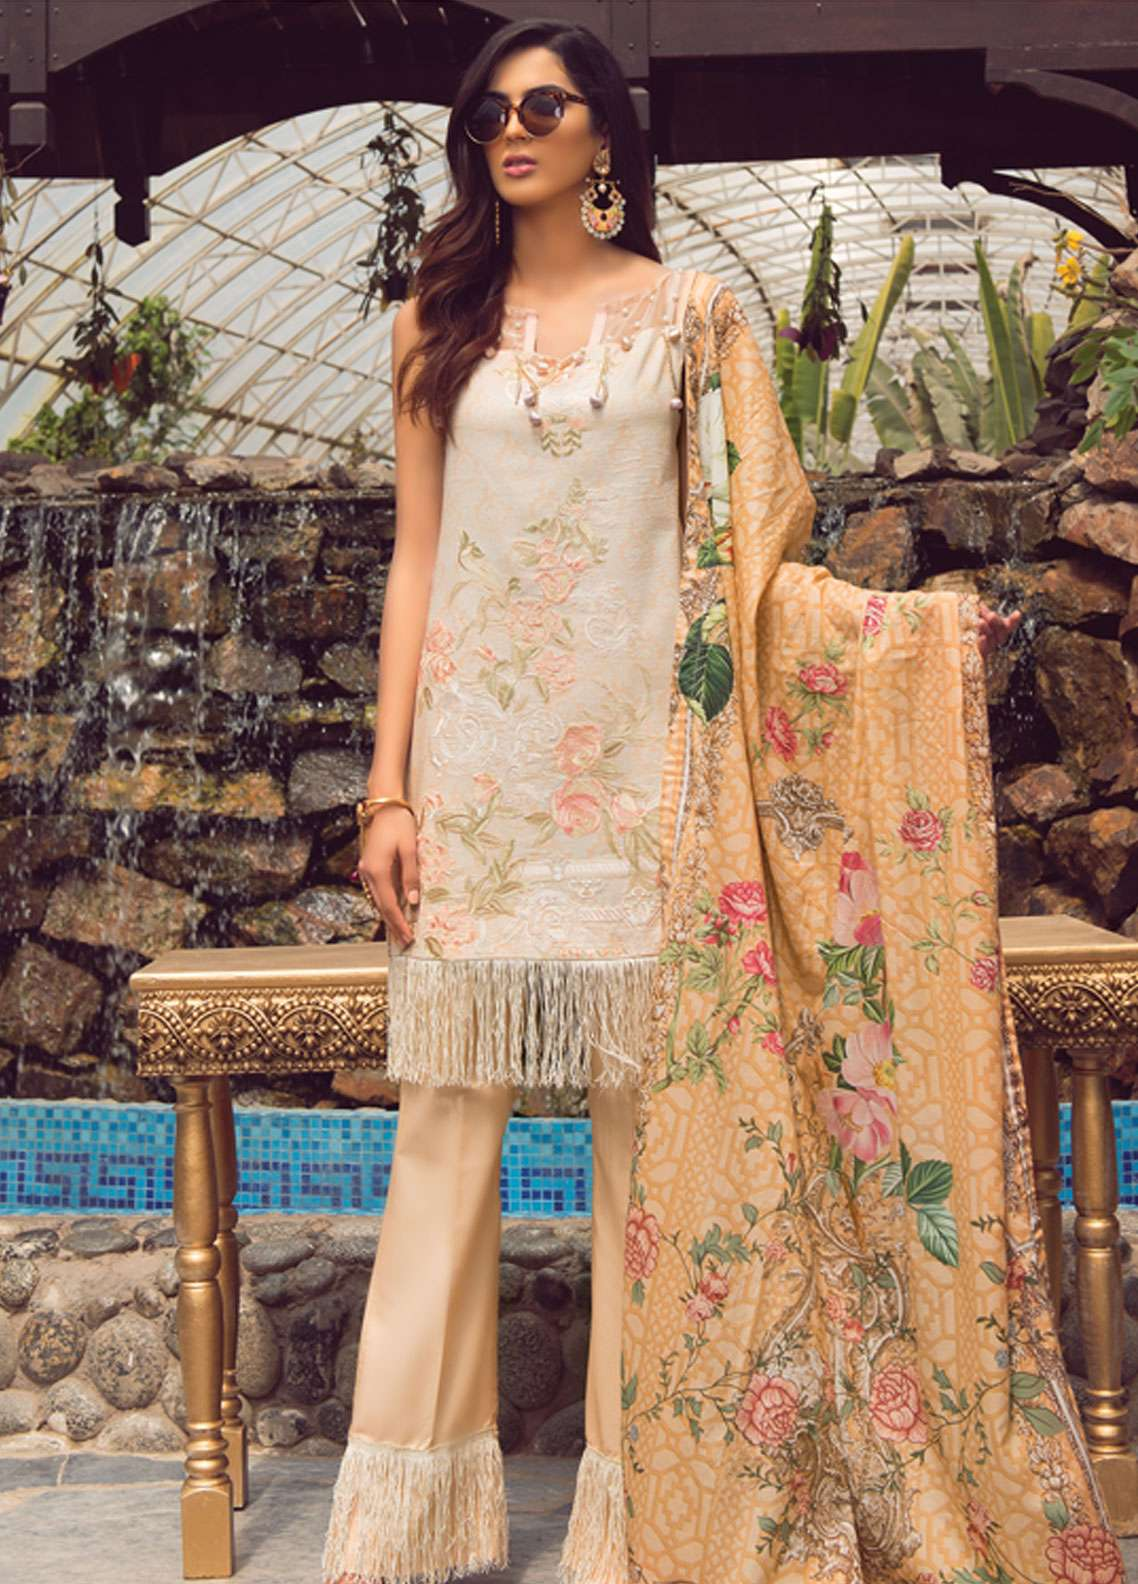 Florence by Rang Rasiya Embroidered Lawn Unstitched 3 Piece Suit FRR19L 8004A - Spring / Summer Collection